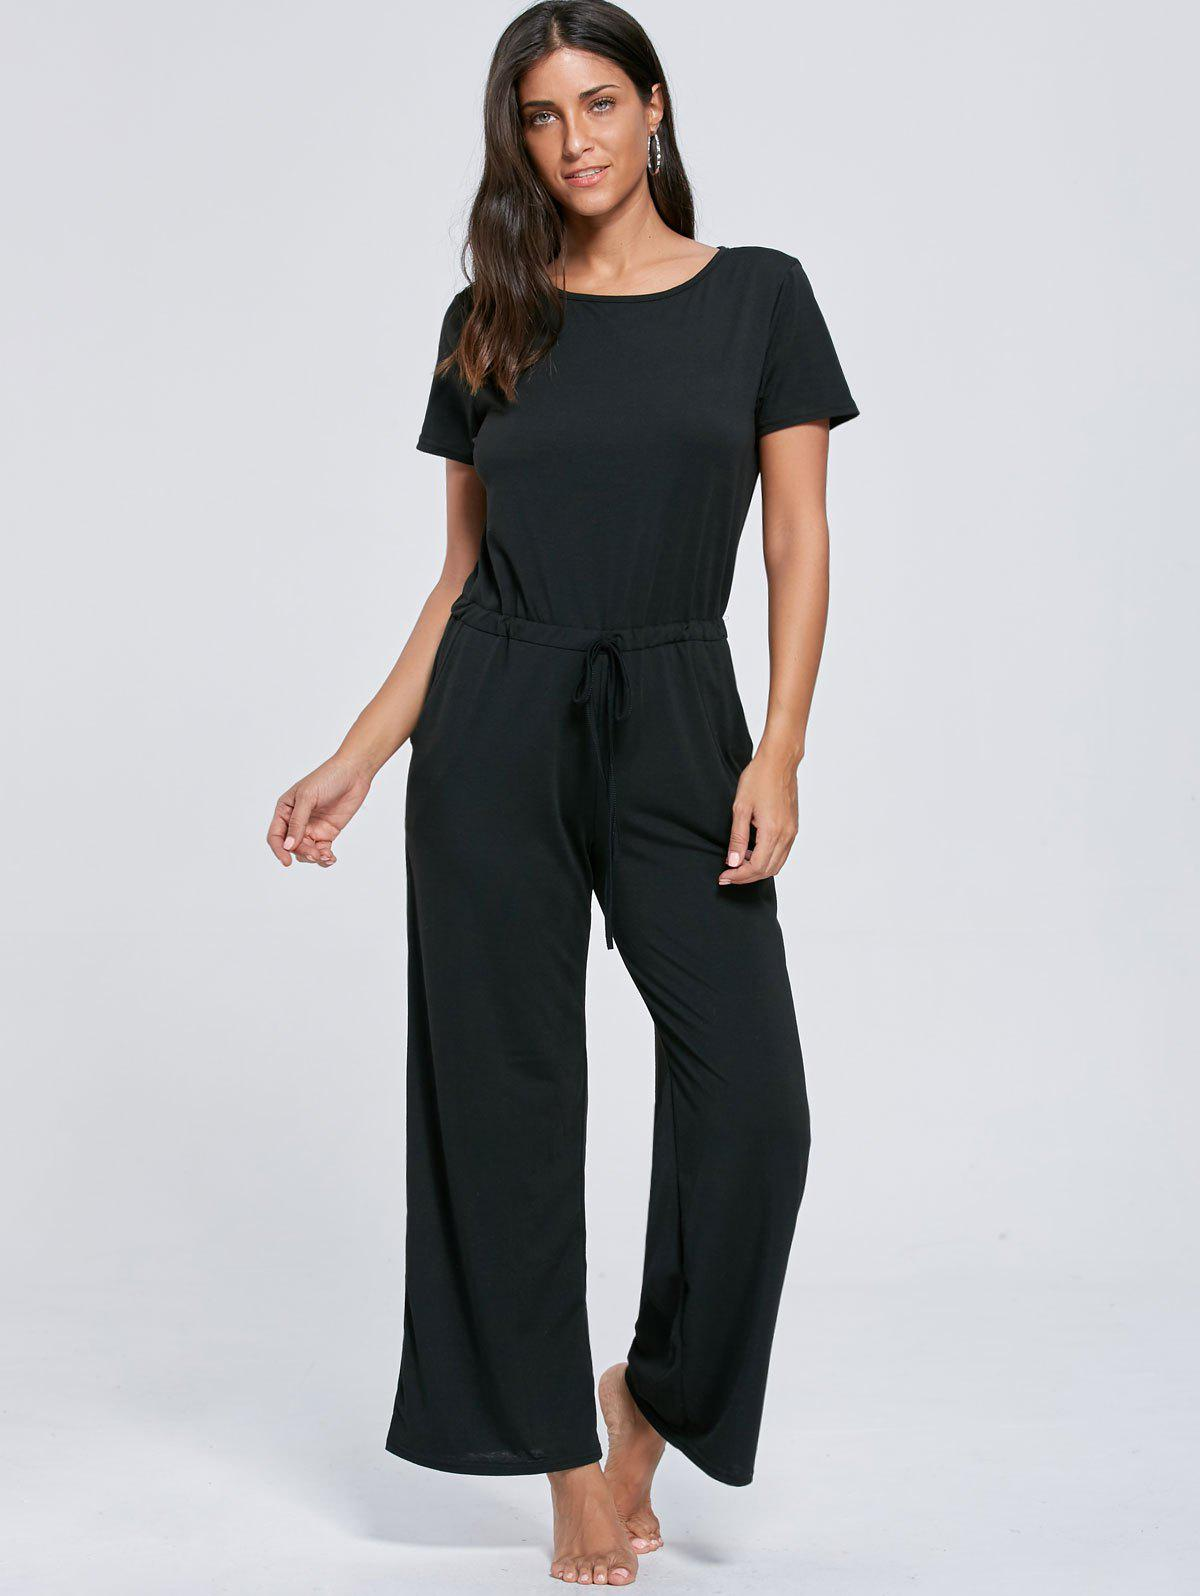 Short Sleeve Pocket Drawstring Jumpsuit - BLACK S